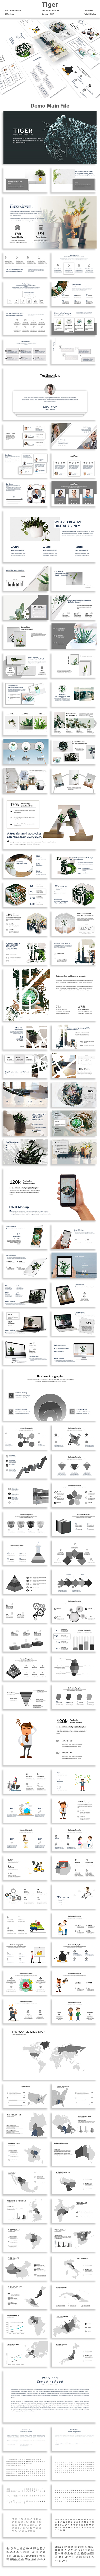 Tiger Multipurpose Keynote Template - Creative Keynote Templates